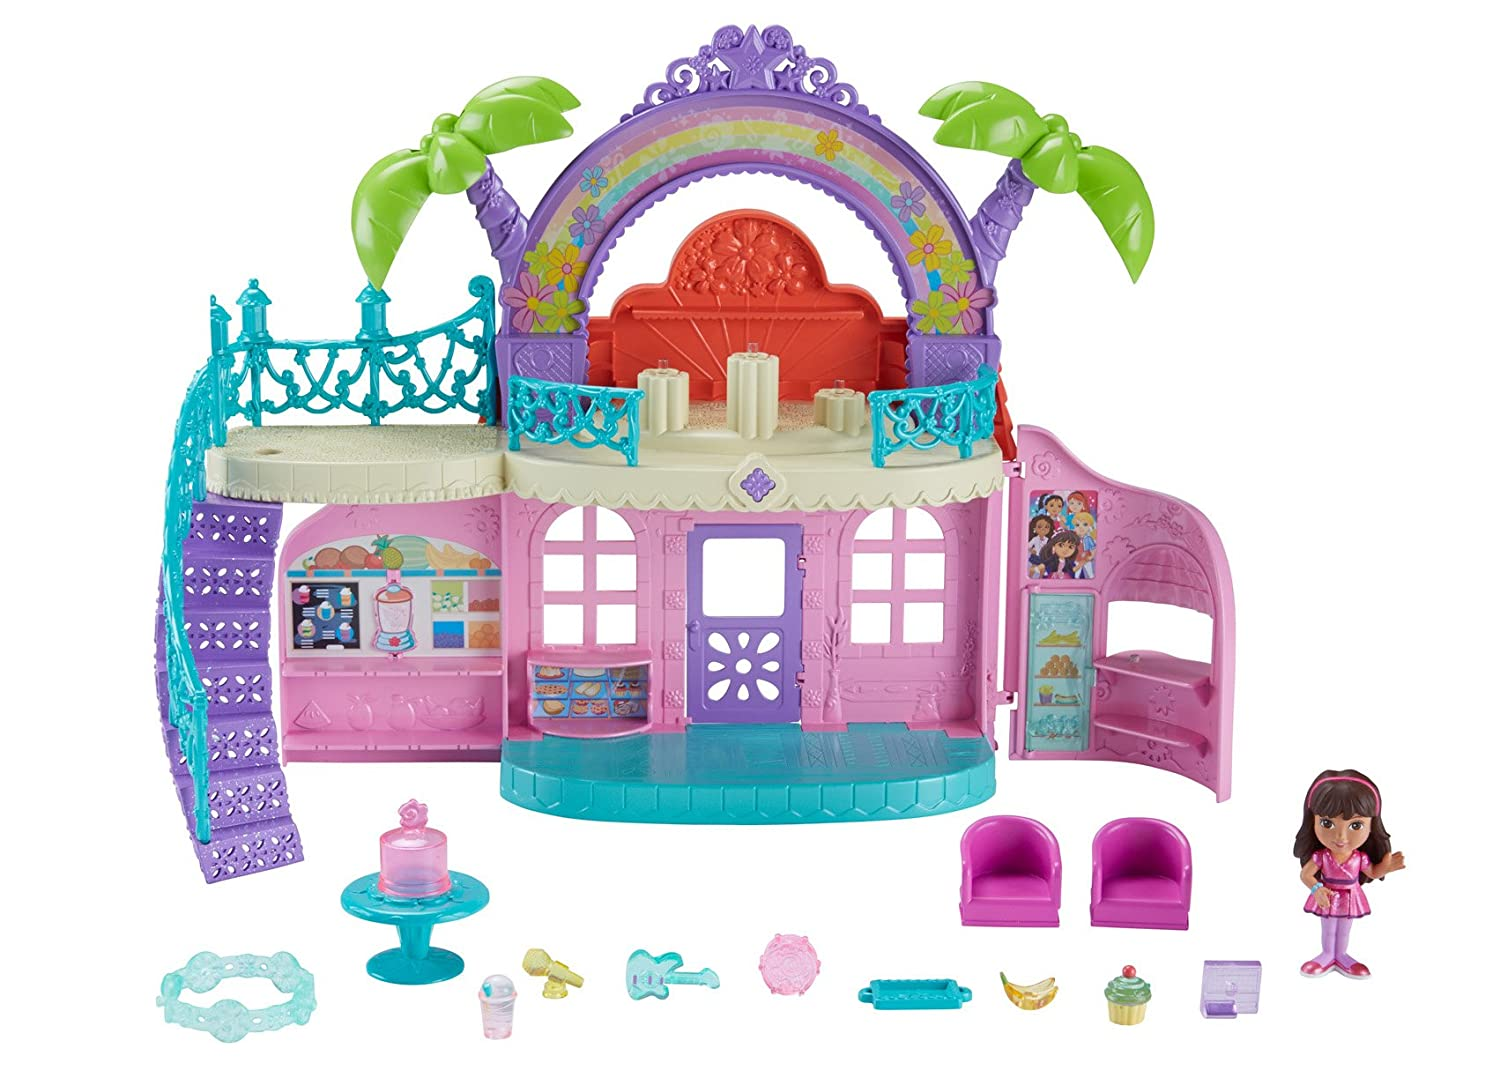 Dora and Friends Cafe Playset